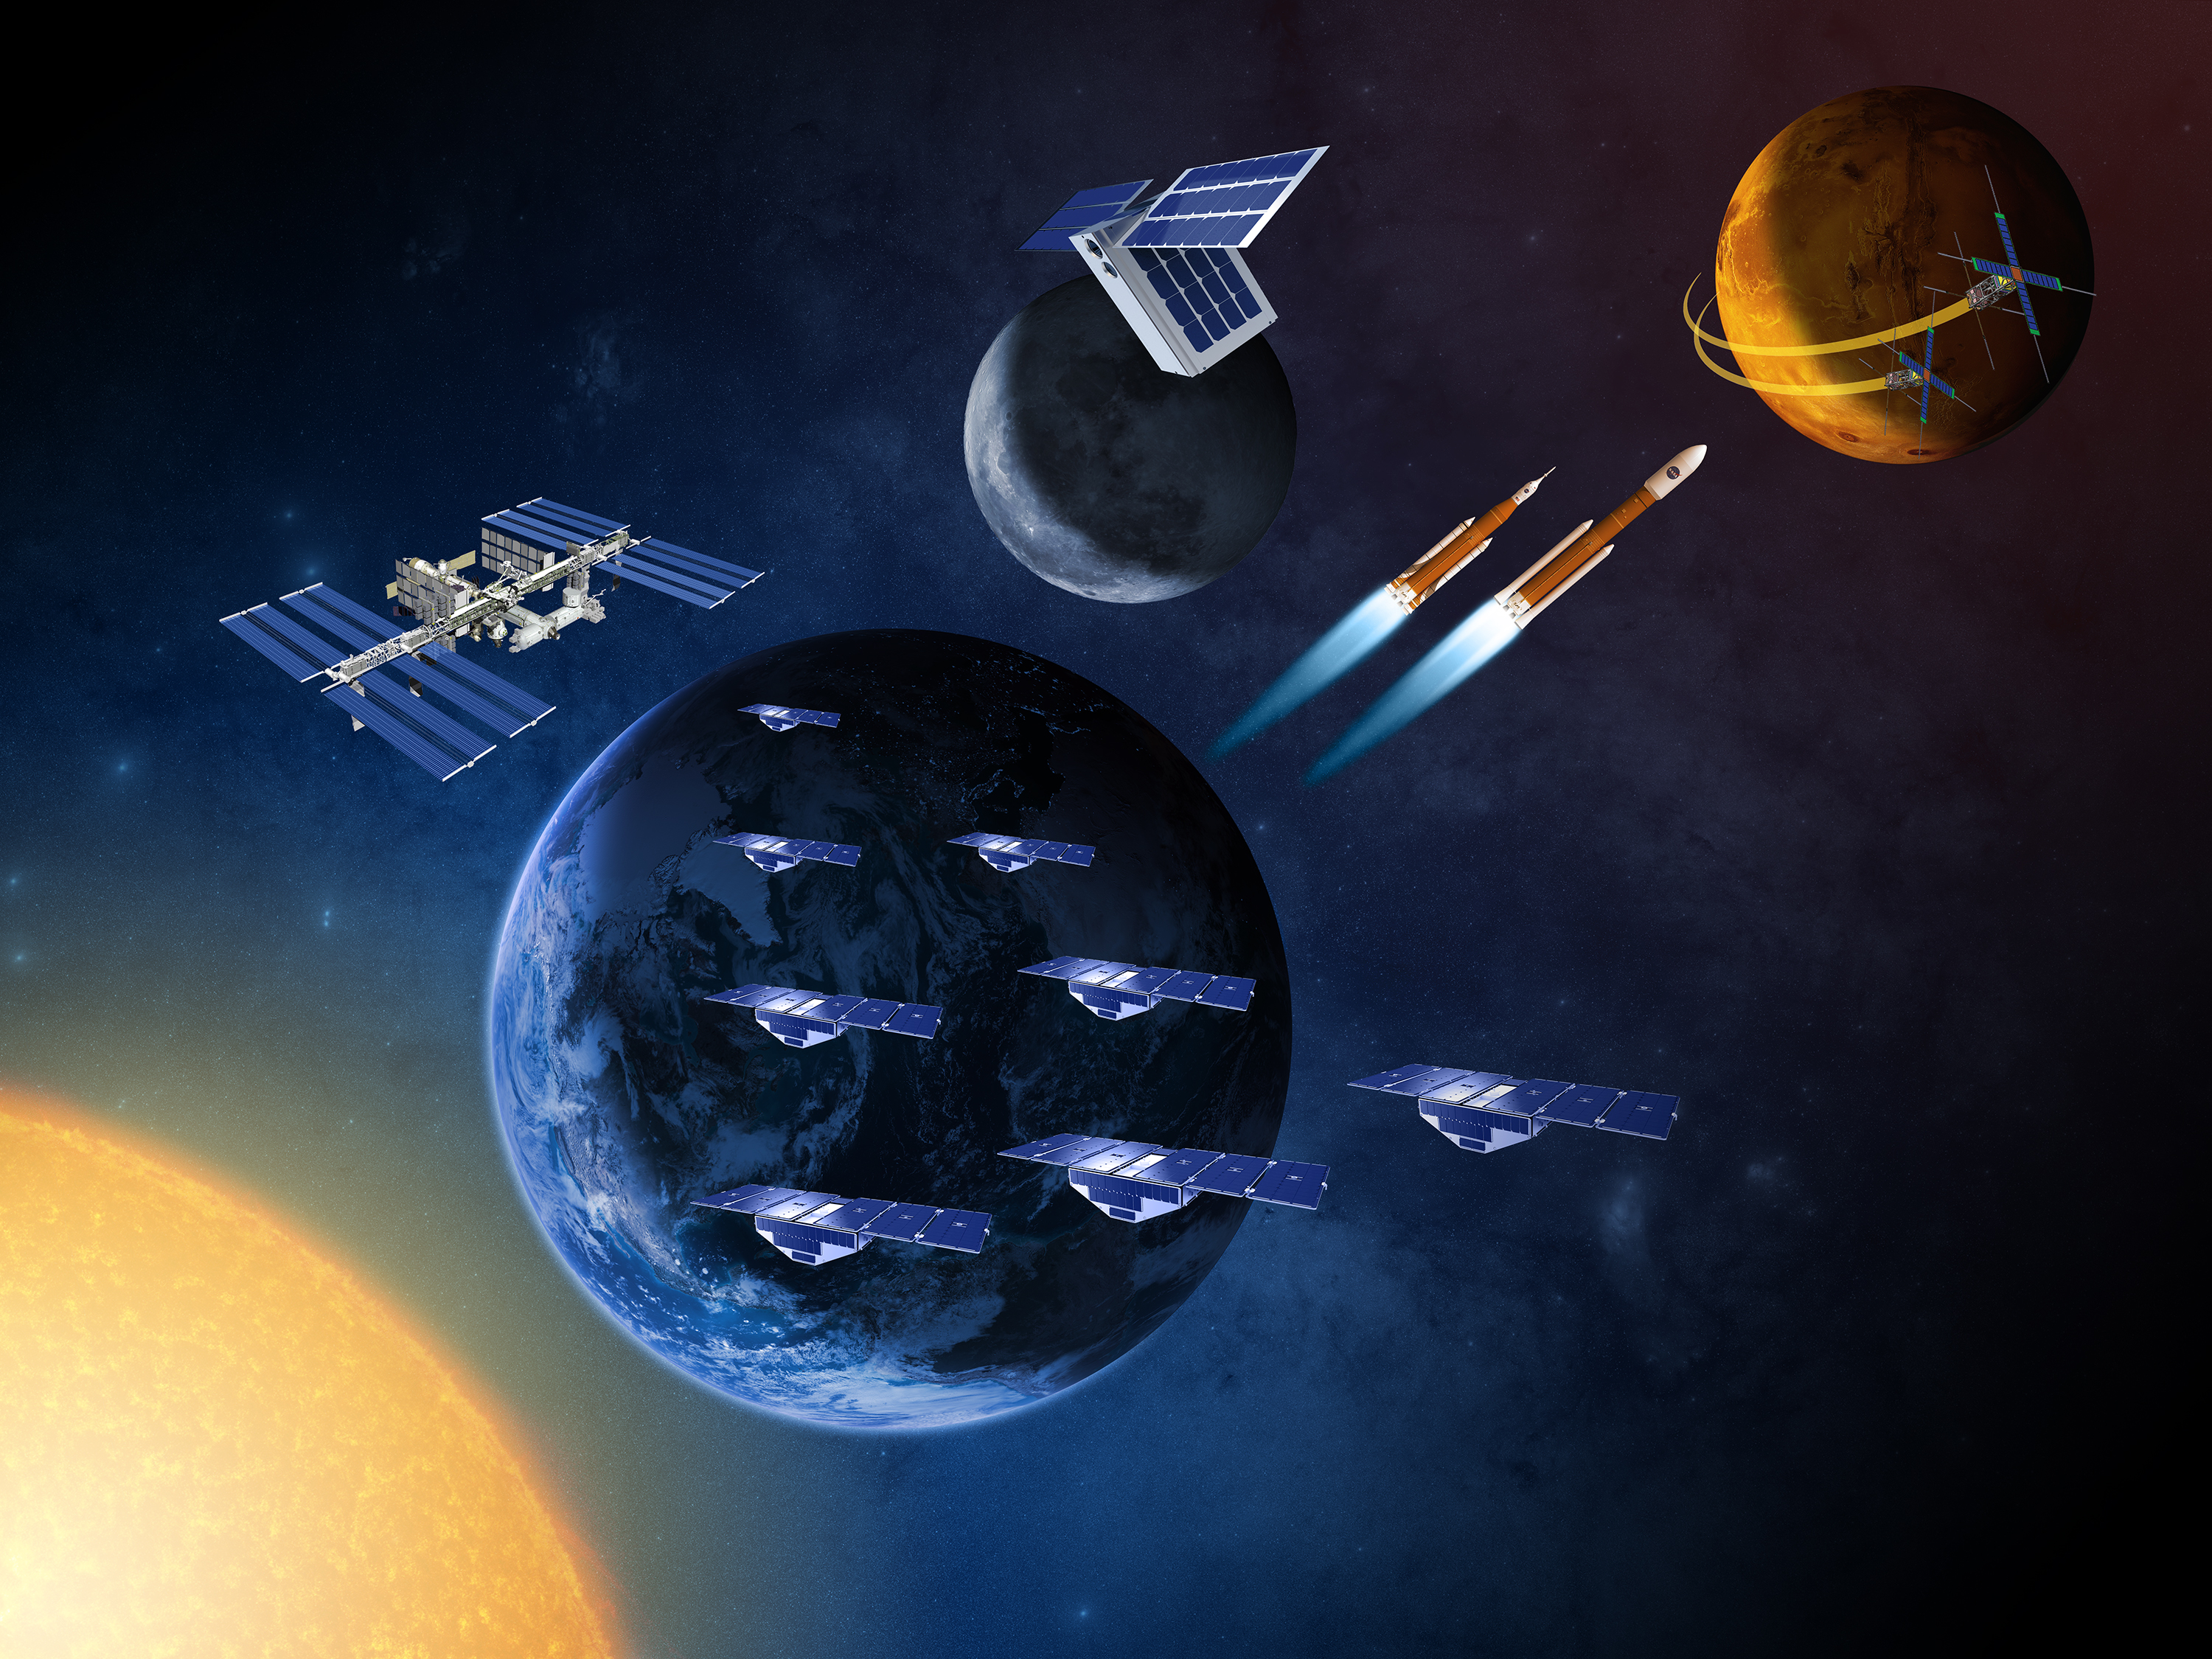 NASA to Launch 'Swarms' of Small, Earth-Observing Satellites